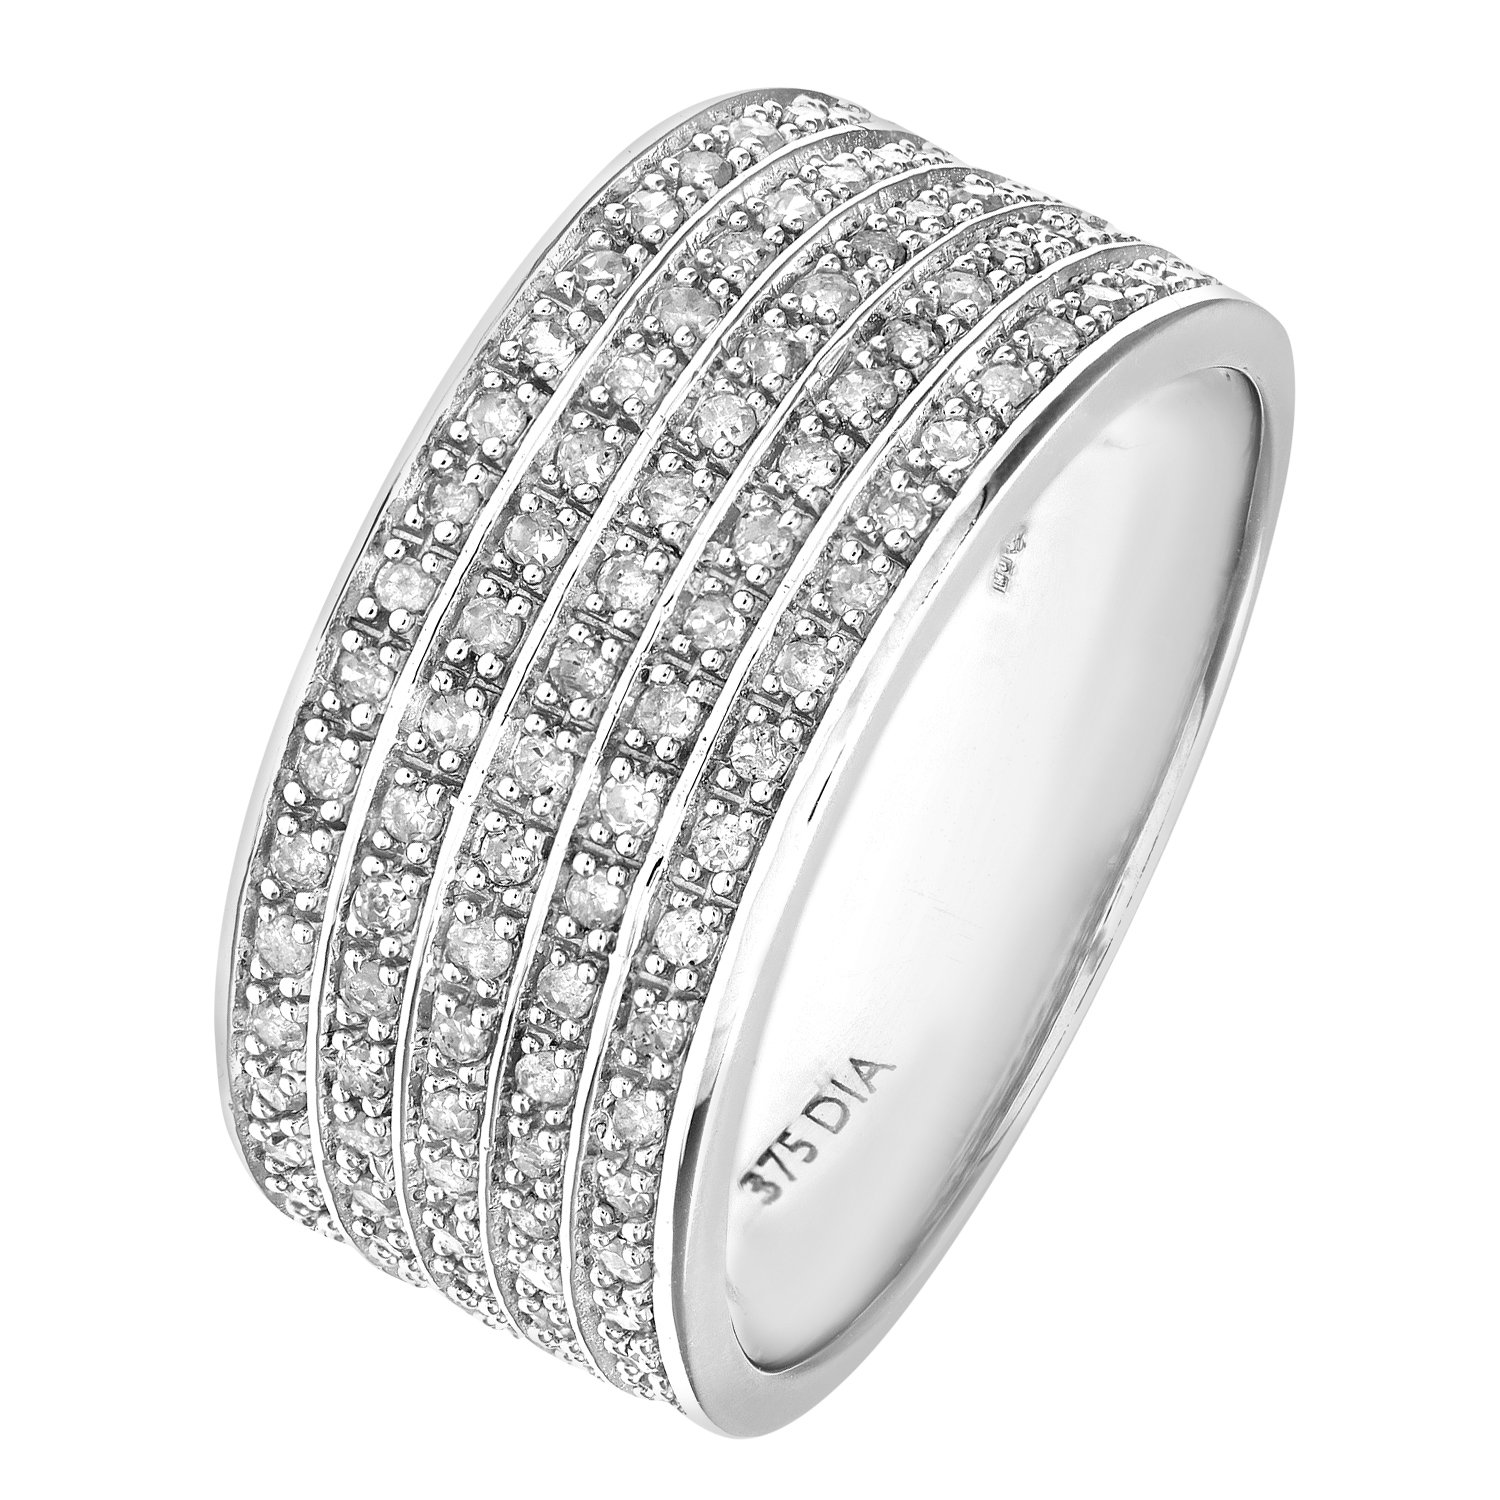 engagement diamond cuts round woman hbz know should multi ring leighton wedding every best bands styles bridal fashion